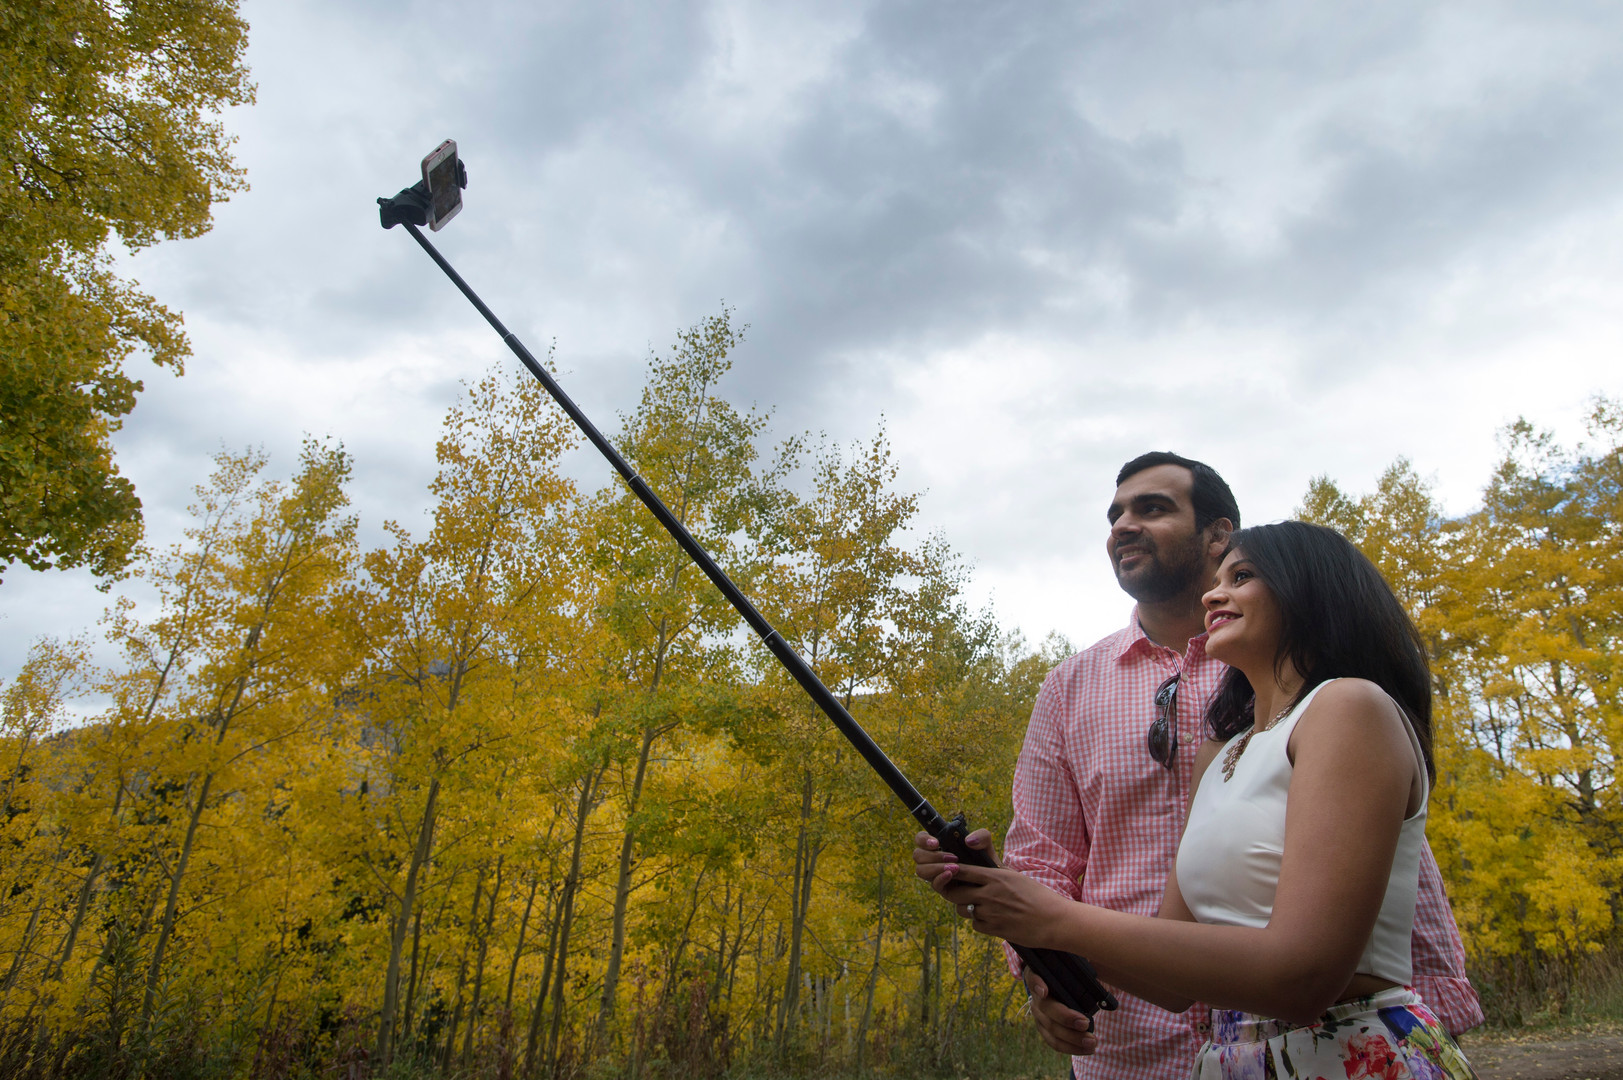 Vastal Thakkar and Nirali Patel, visiting from Chicago, snap a selfie as they enjoy the fall colors near Crested Butte, Colorado on Friday, September 22, 2017.